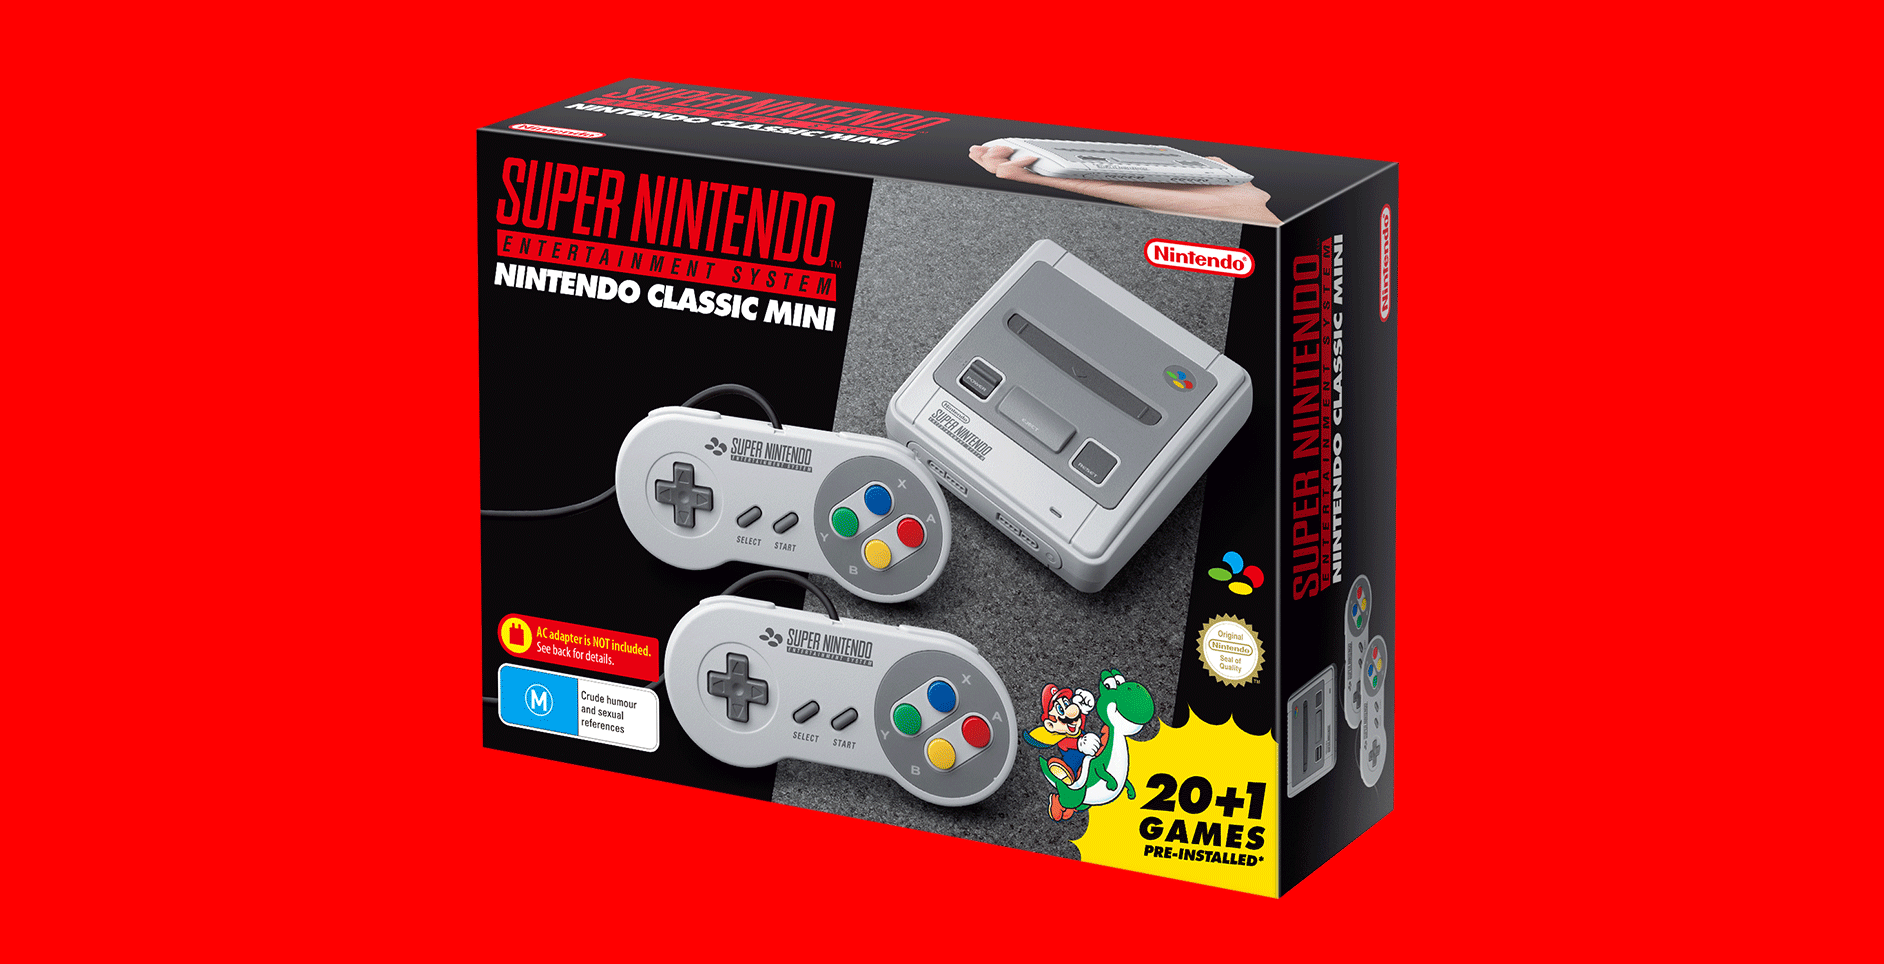 SNES Classic Already Looks As Hackable As NES Classic